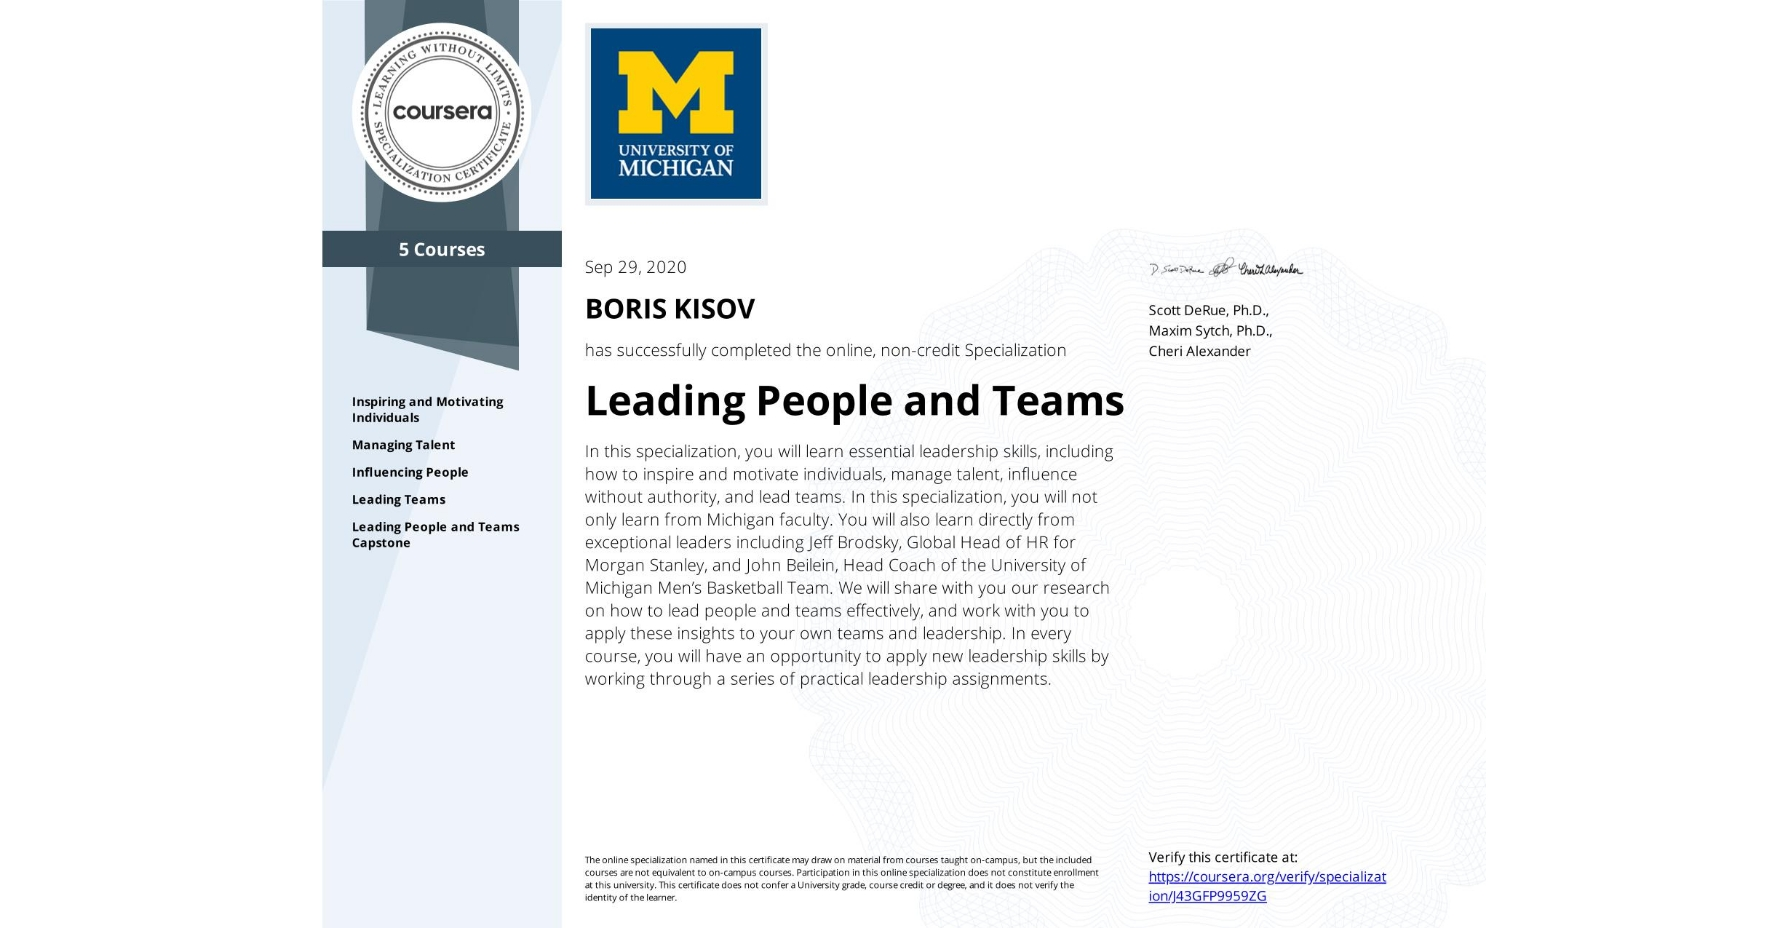 View certificate for BORIS KISOV, Leading People and Teams, offered through Coursera. In this specialization, you will learn essential leadership skills, including how to inspire and motivate individuals, manage talent, influence without authority, and lead teams. In this specialization, you will not only learn from Michigan faculty. You will also learn directly from exceptional leaders including Jeff Brodsky, Global Head of HR for Morgan Stanley, and John Beilein, Head Coach of the University of Michigan Men's Basketball Team. We will share with you our research on how to lead people and teams effectively, and work with you to apply these insights to your own teams and leadership. In every course, you will have an opportunity to apply new leadership skills by working through a series of practical leadership assignments.